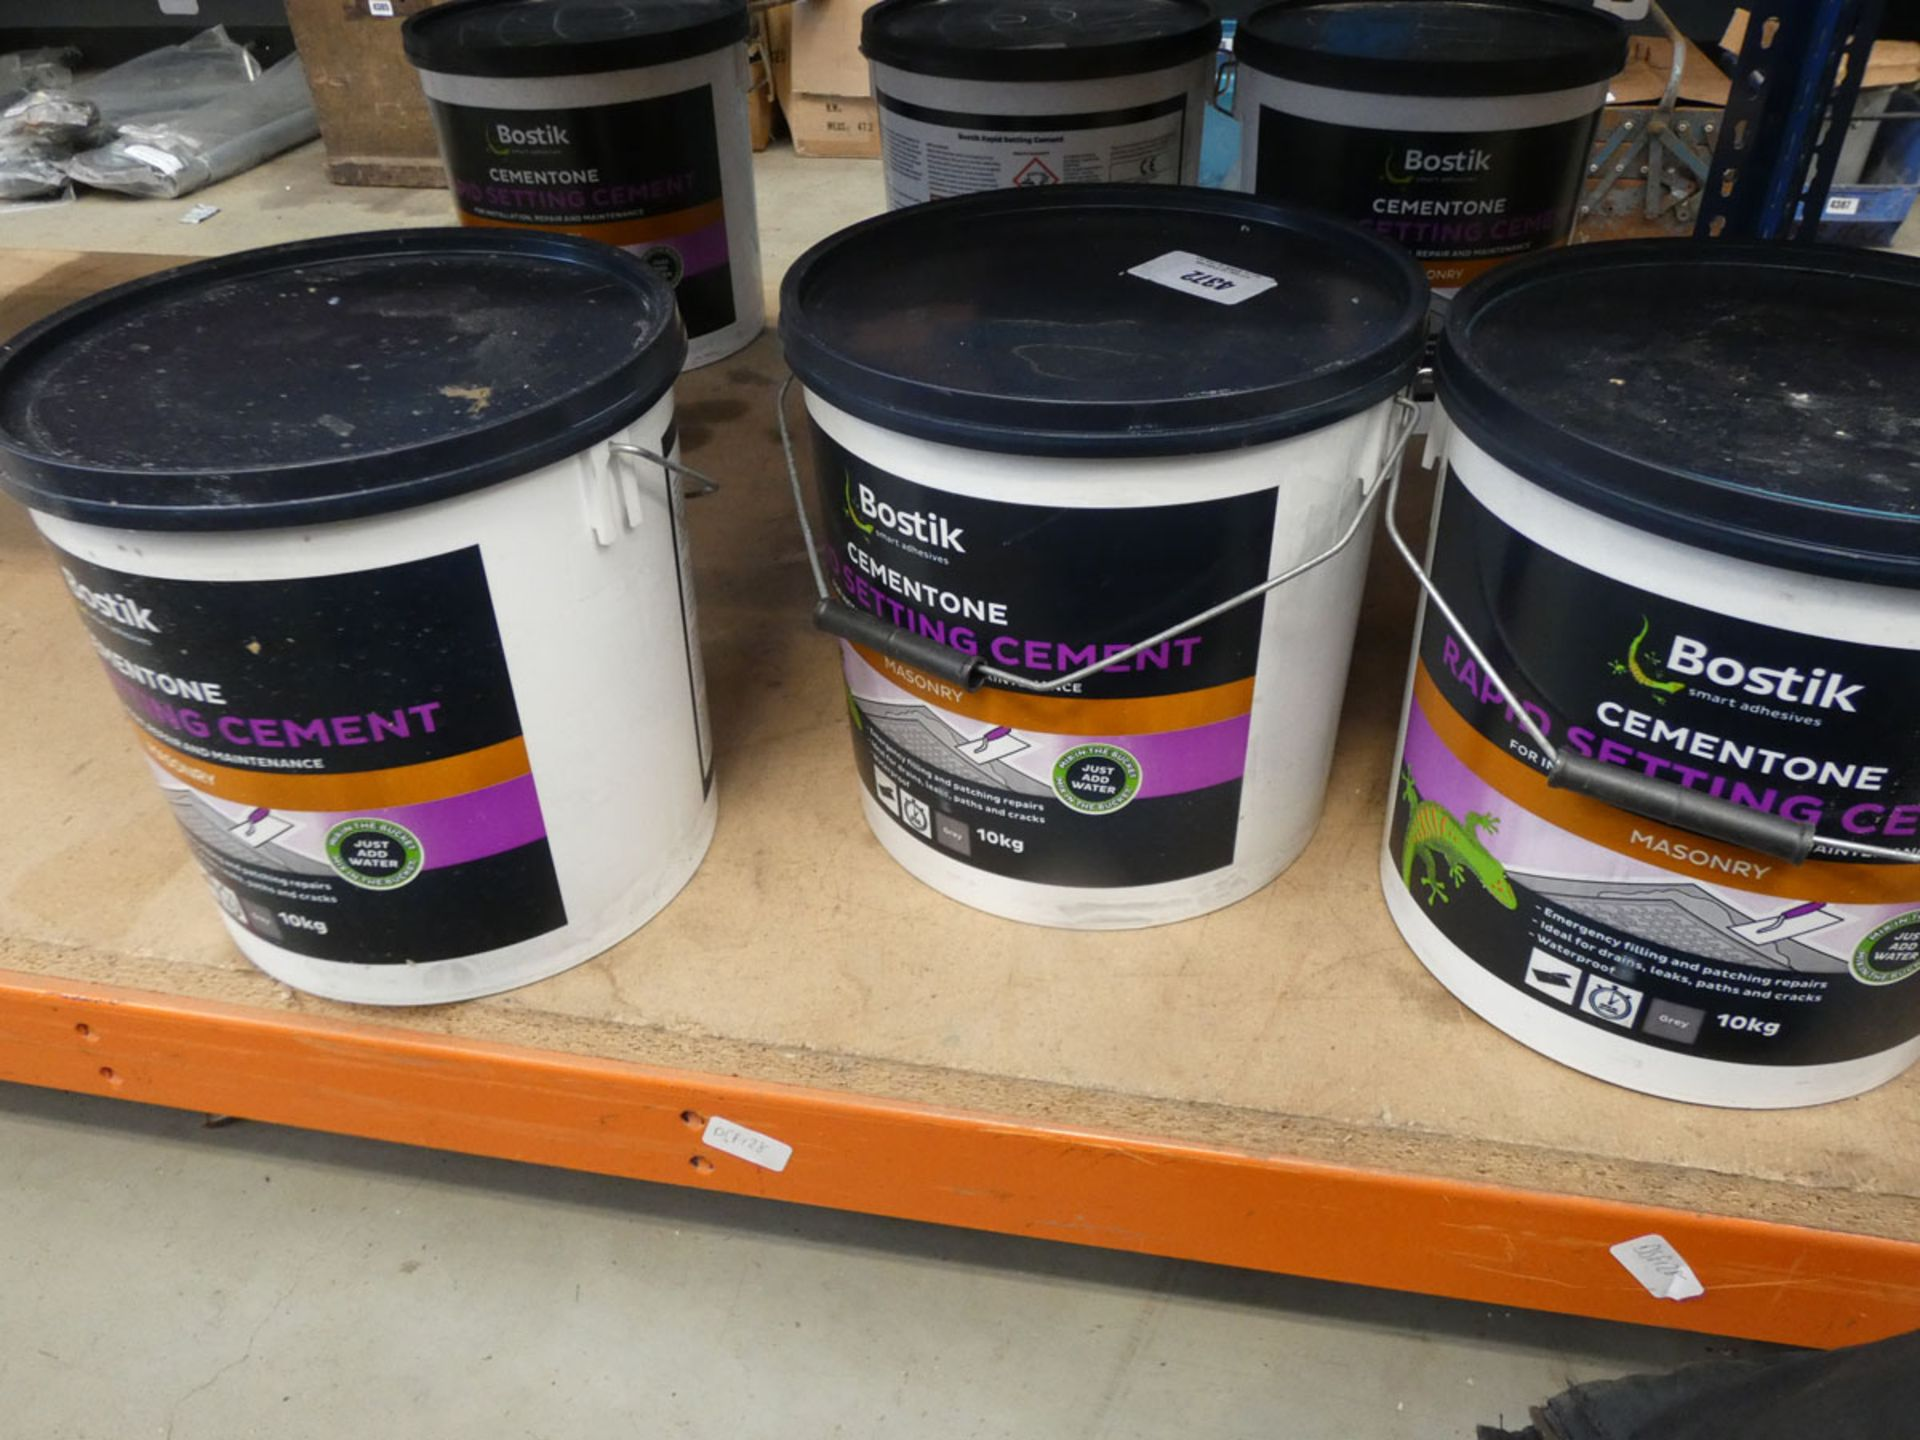 3 tubs of Bostik rapid setting cement